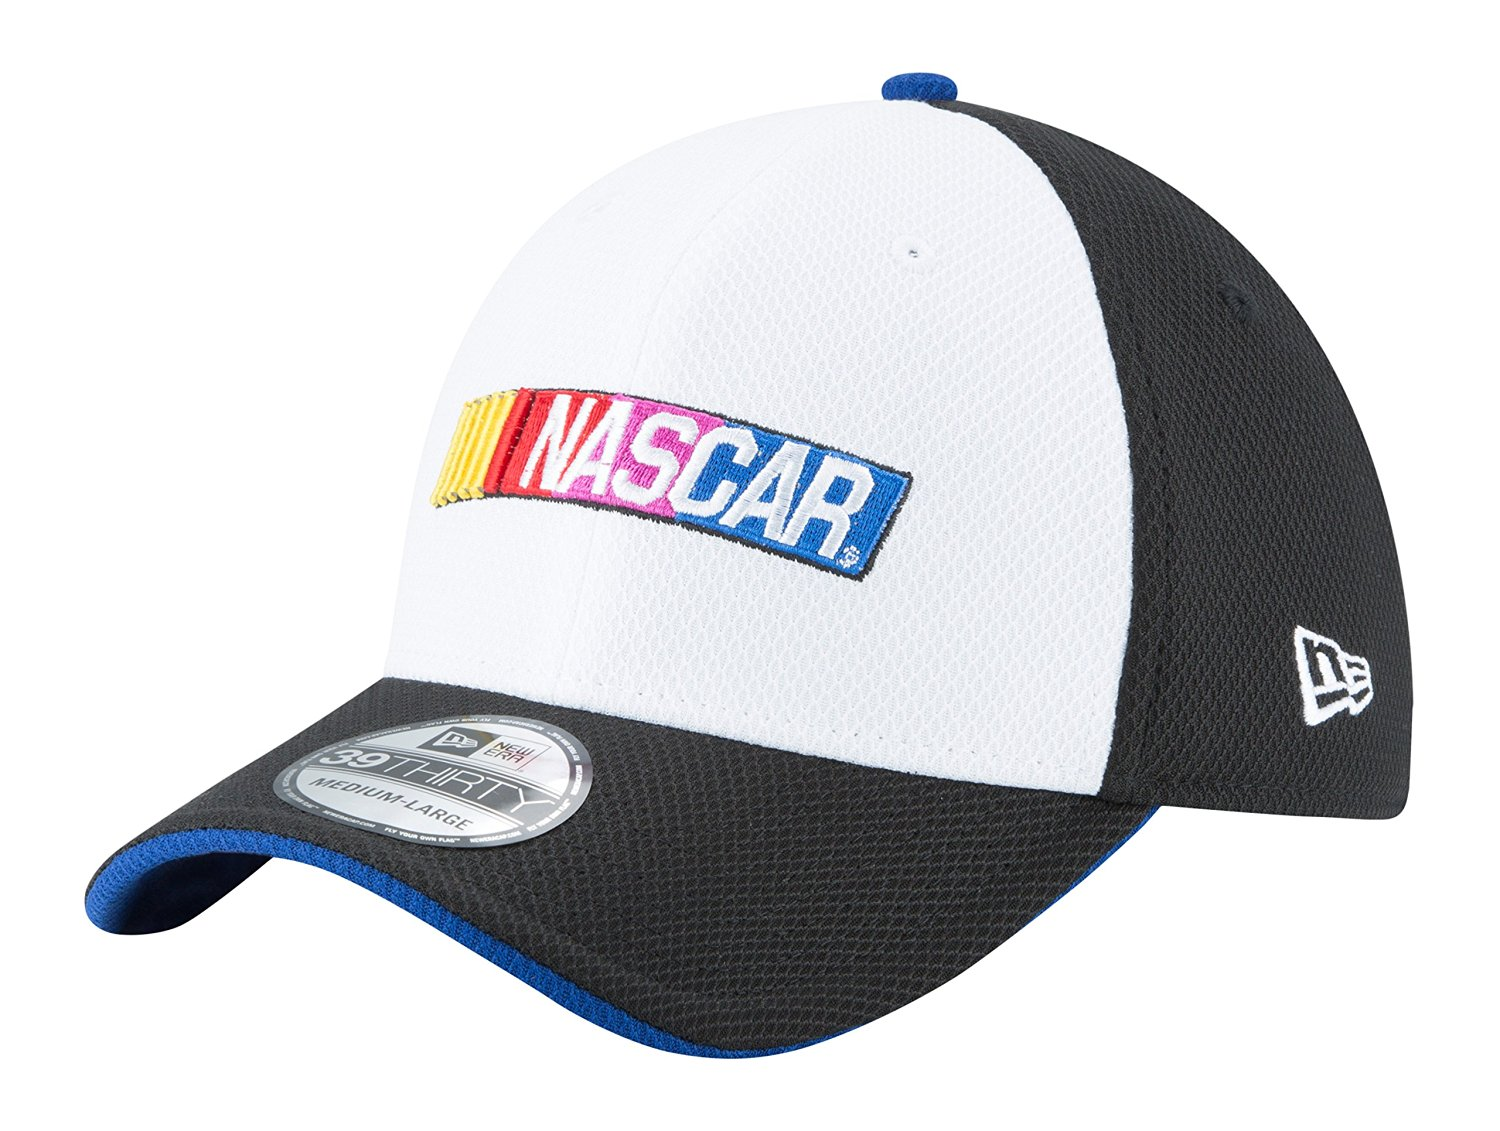 8e21587701e Get Quotations · NASCAR 2016 39THIRTY Stretch Fit Drivers Cap